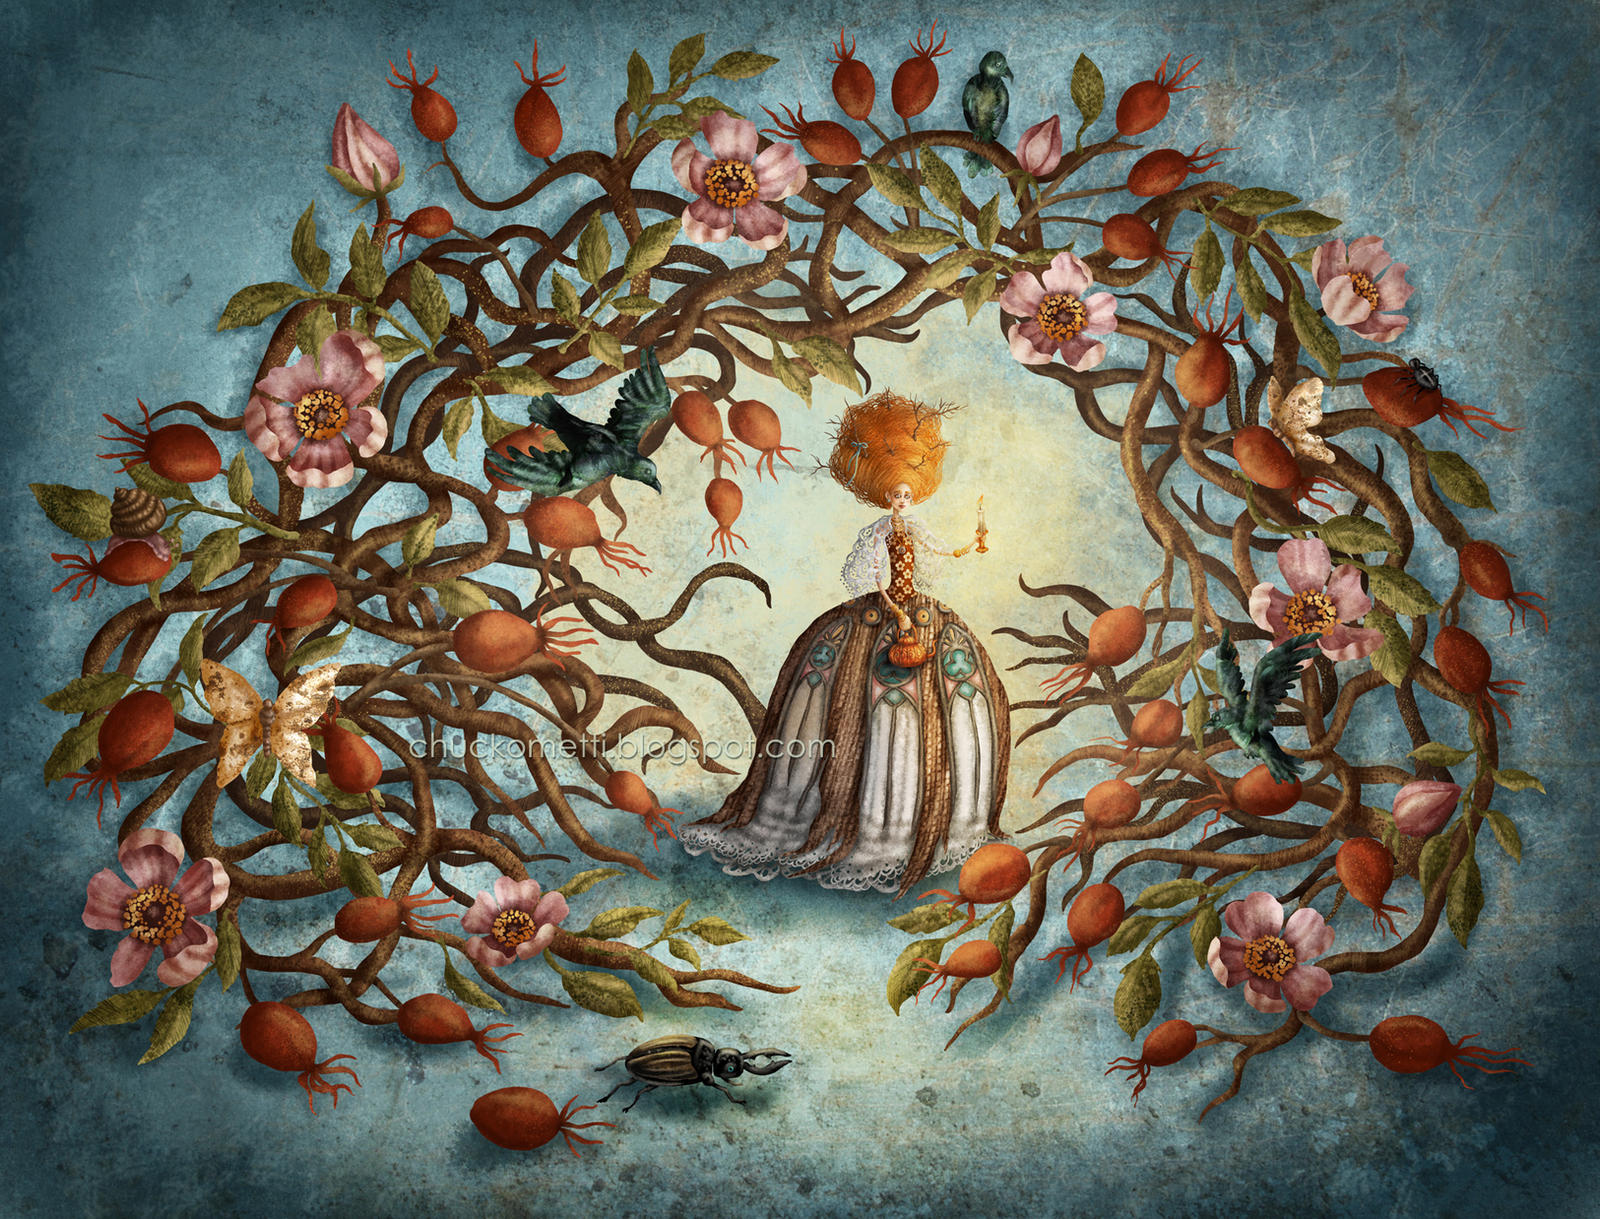 Rose Hips and Night Creatures